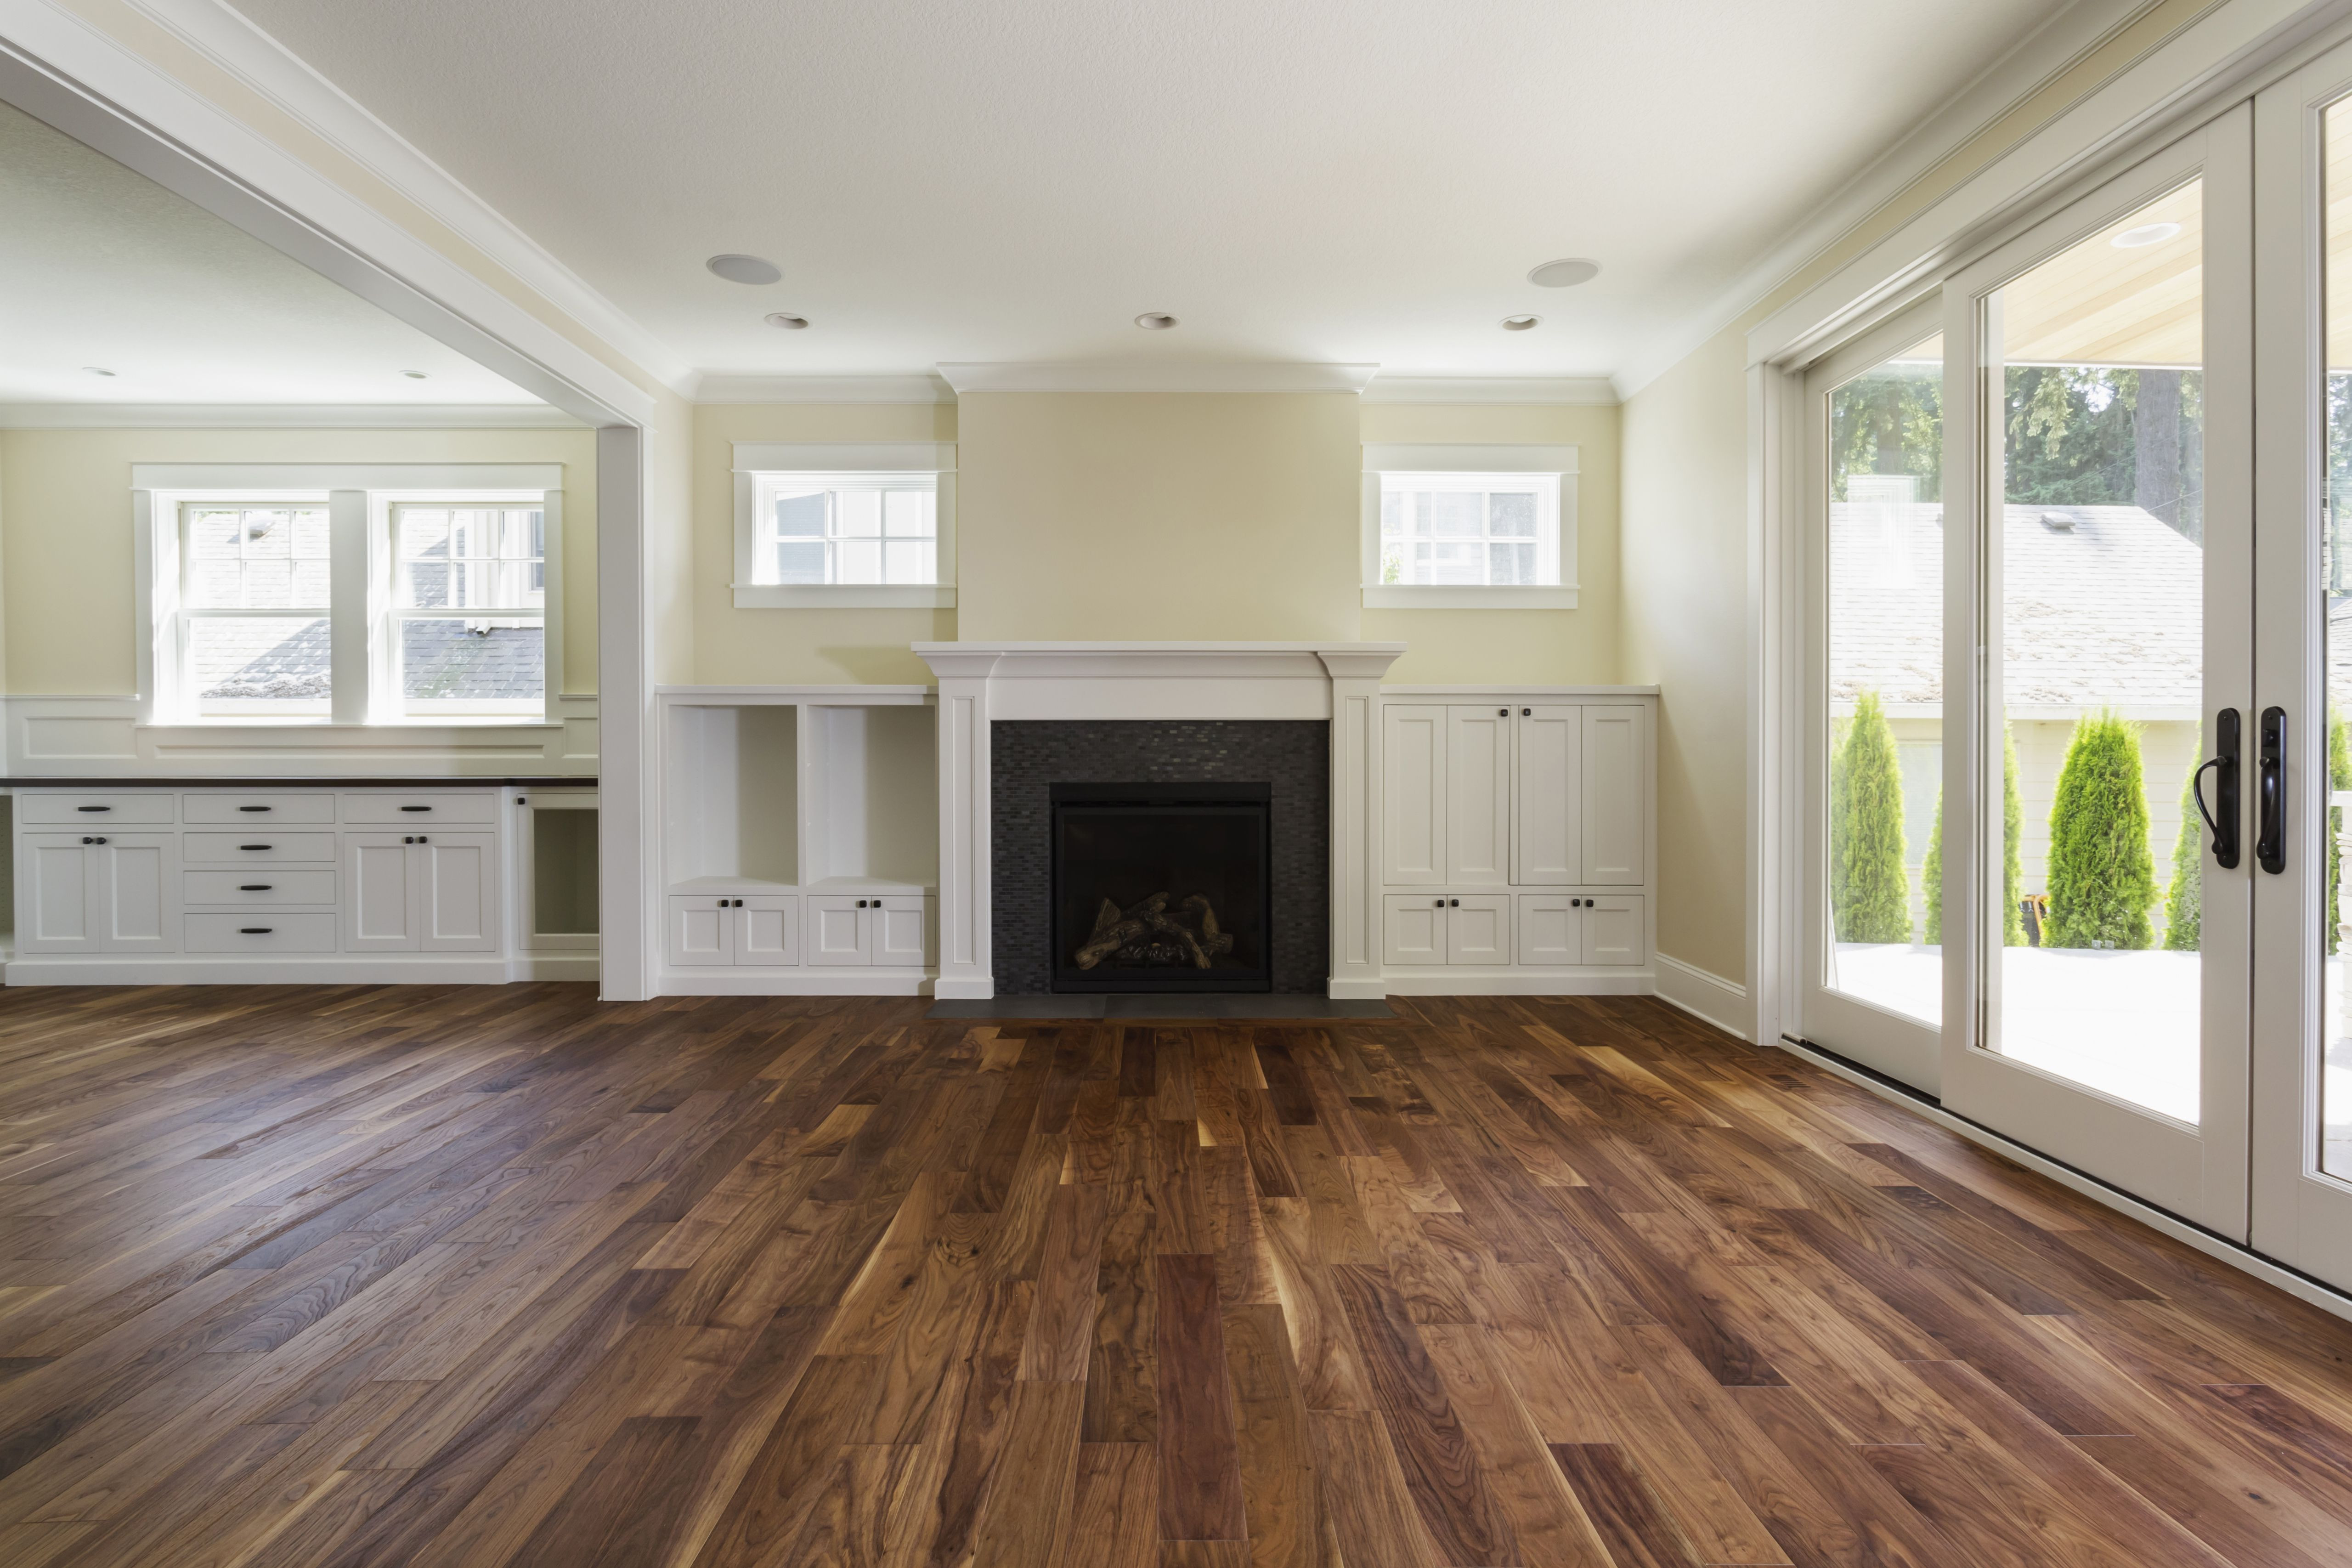 hardwood flooring installation kansas city of how to install wood floors the pros and cons of prefinished hardwood regarding how to install wood floors the pros and cons of prefinished hardwood flooring